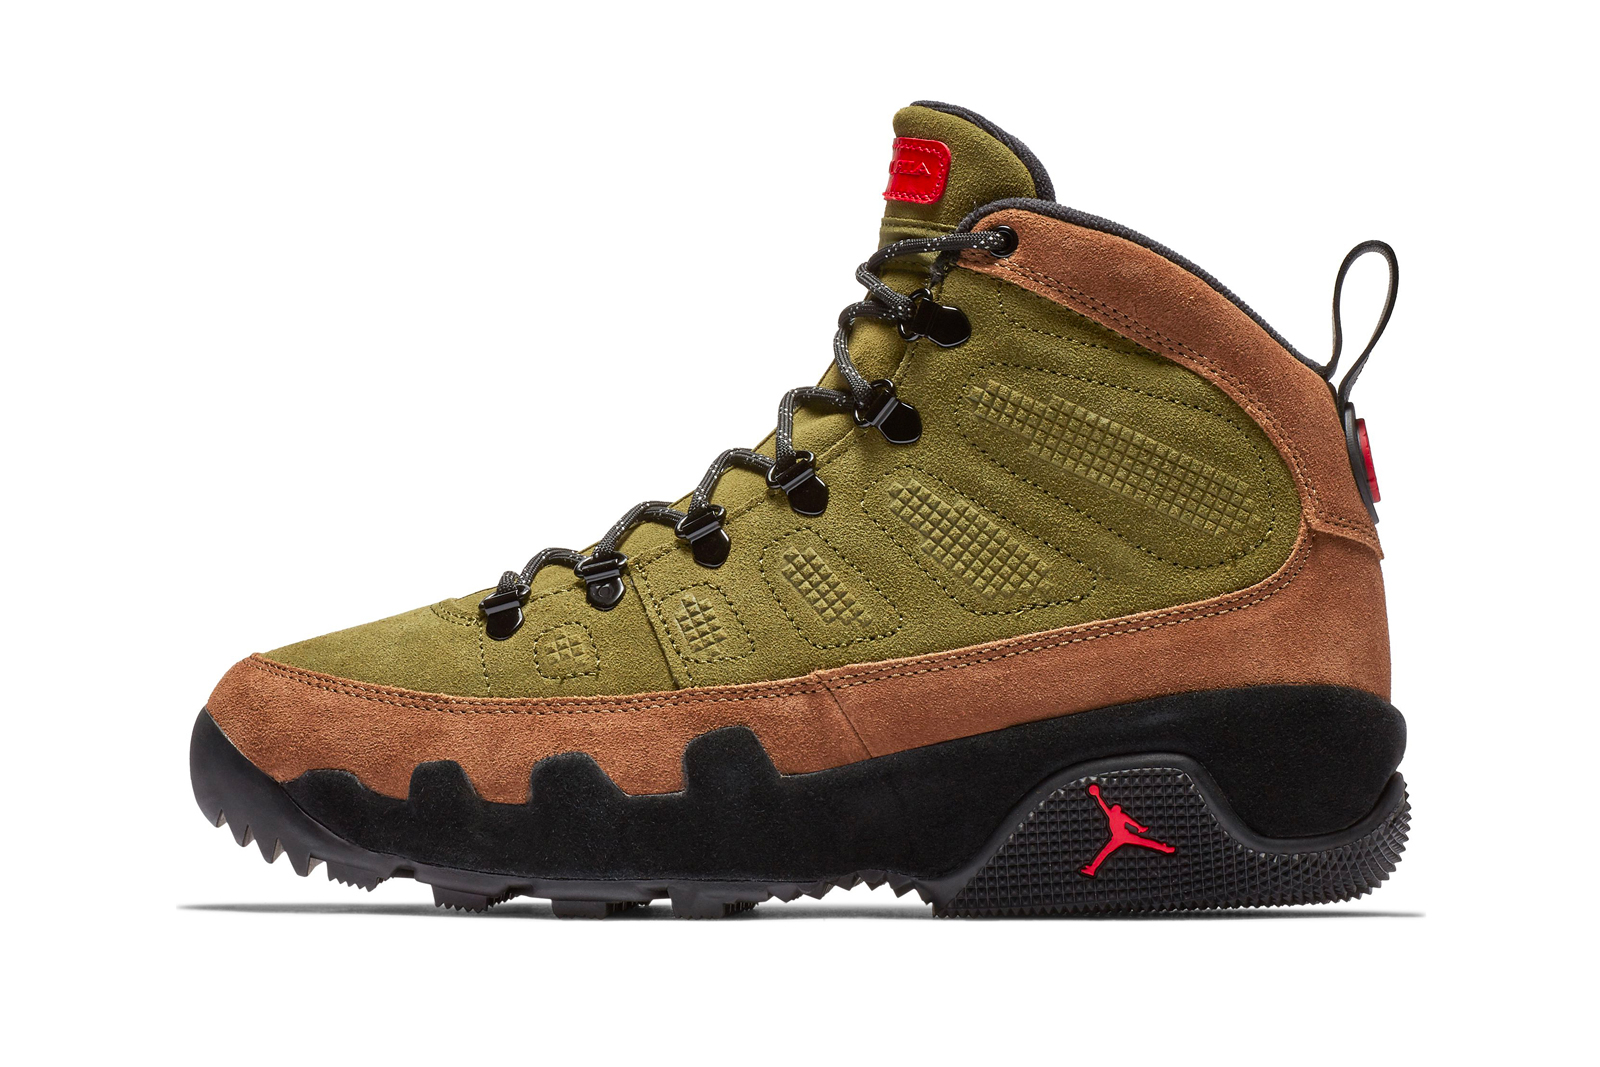 new product 15f27 c5521 Air Jordan 9 Retro Boot NRG